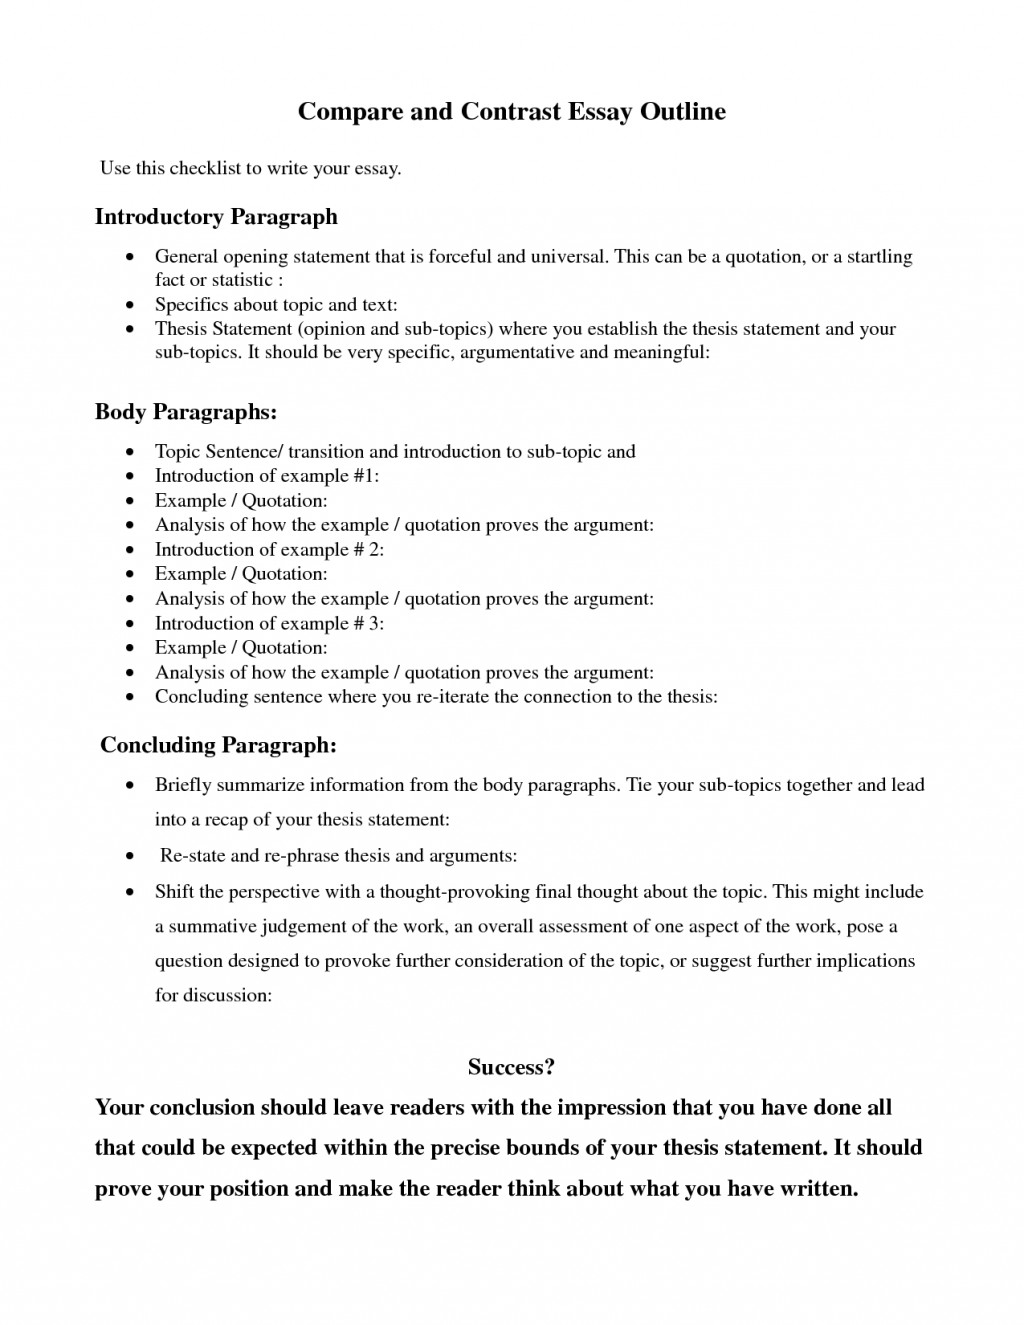 001 Compare And Contrast Essay Example Frightening Topics Outline Doc Sample 4th Grade Large